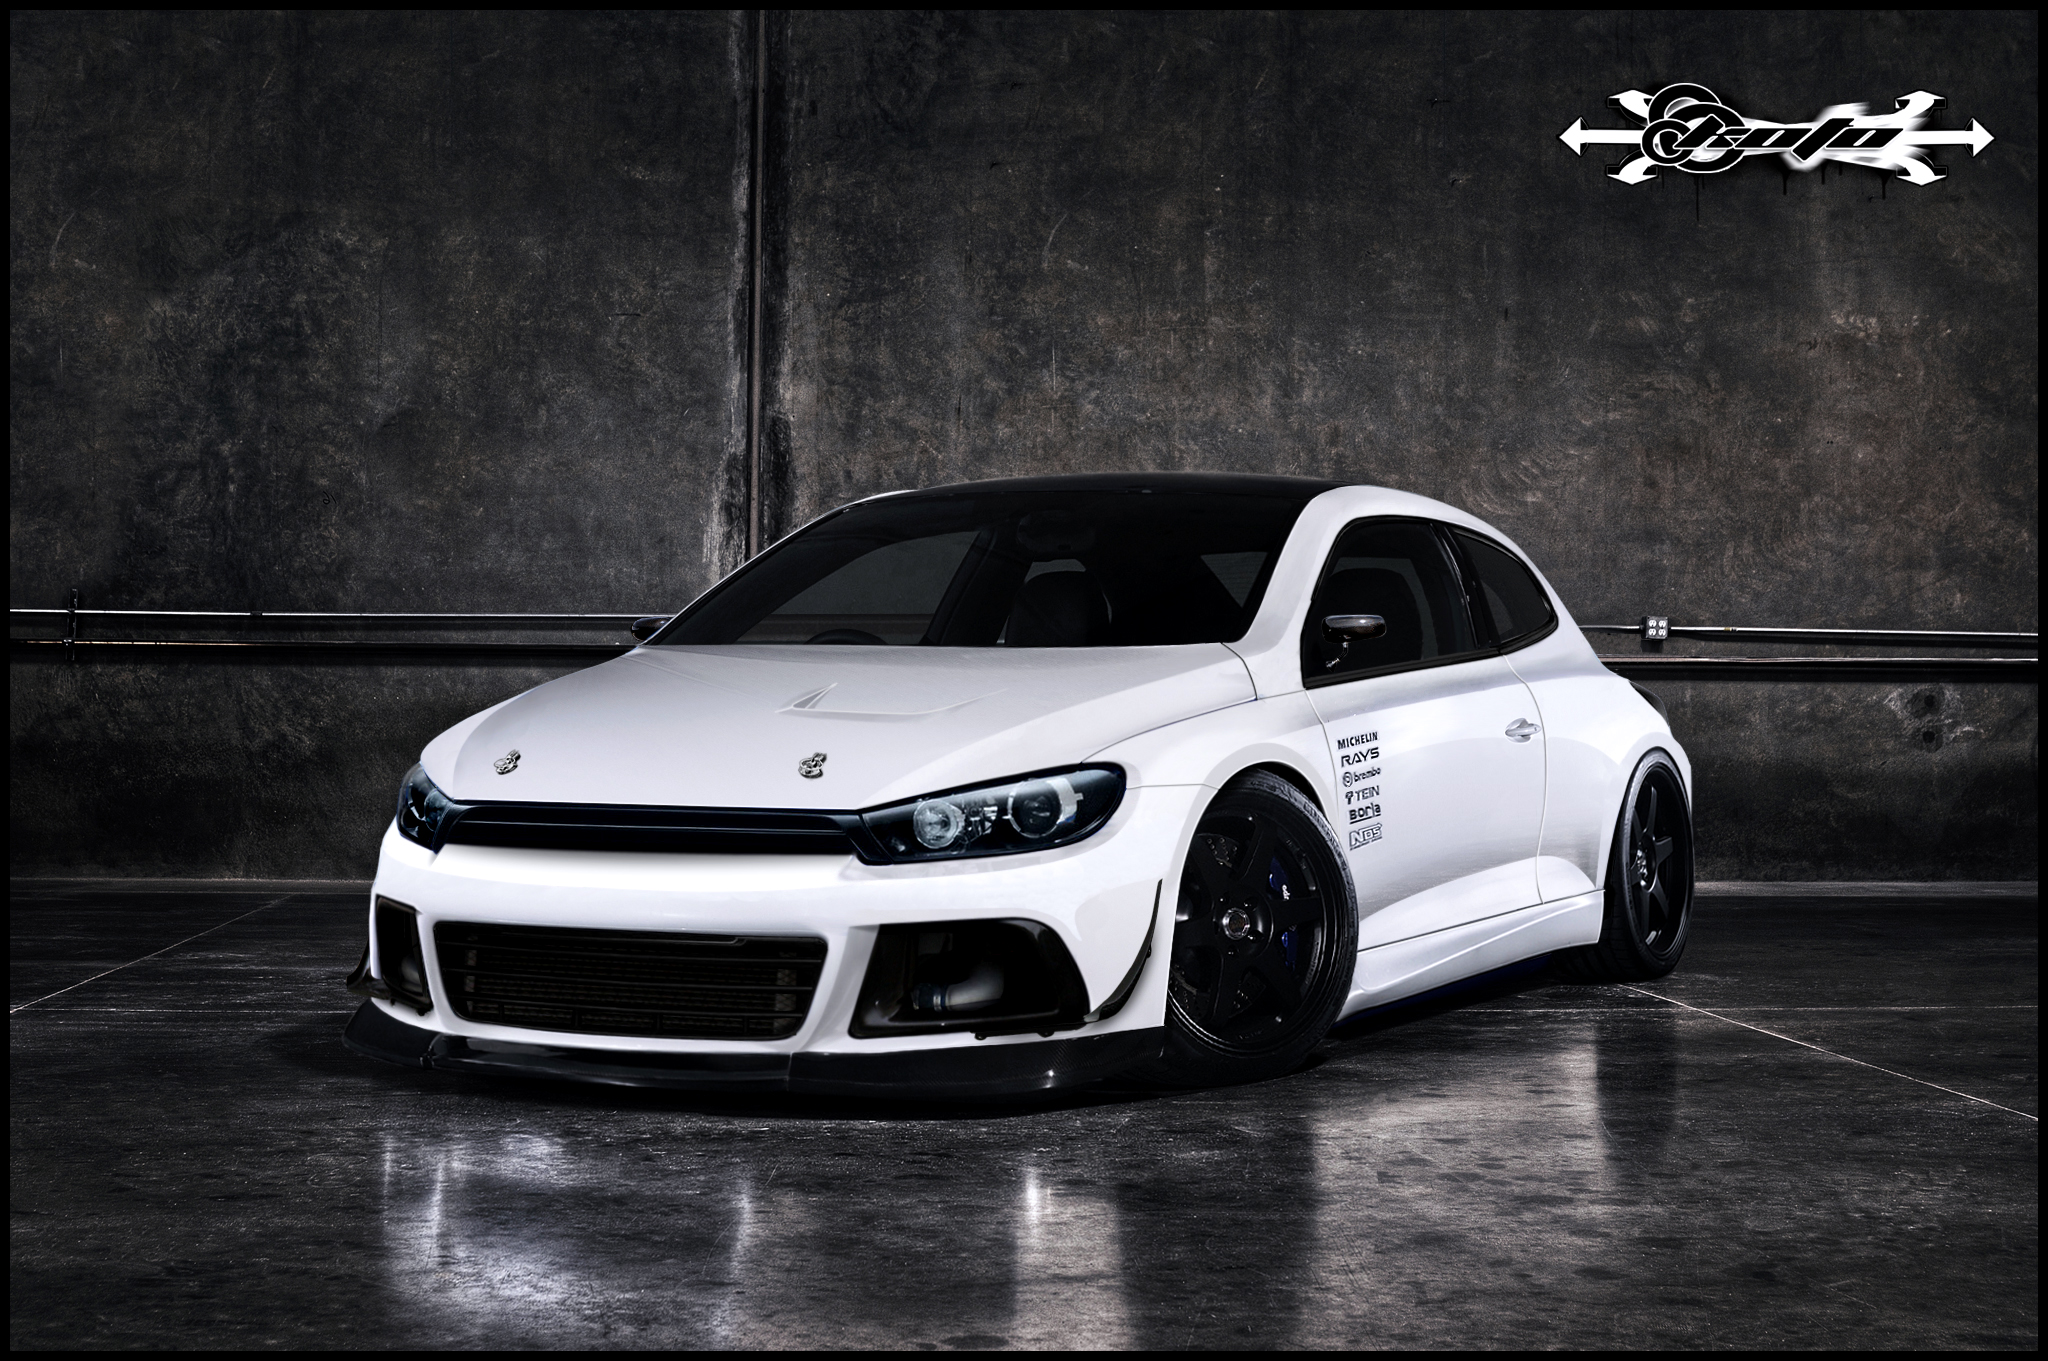 volkswagen scirocco review and photos. Black Bedroom Furniture Sets. Home Design Ideas